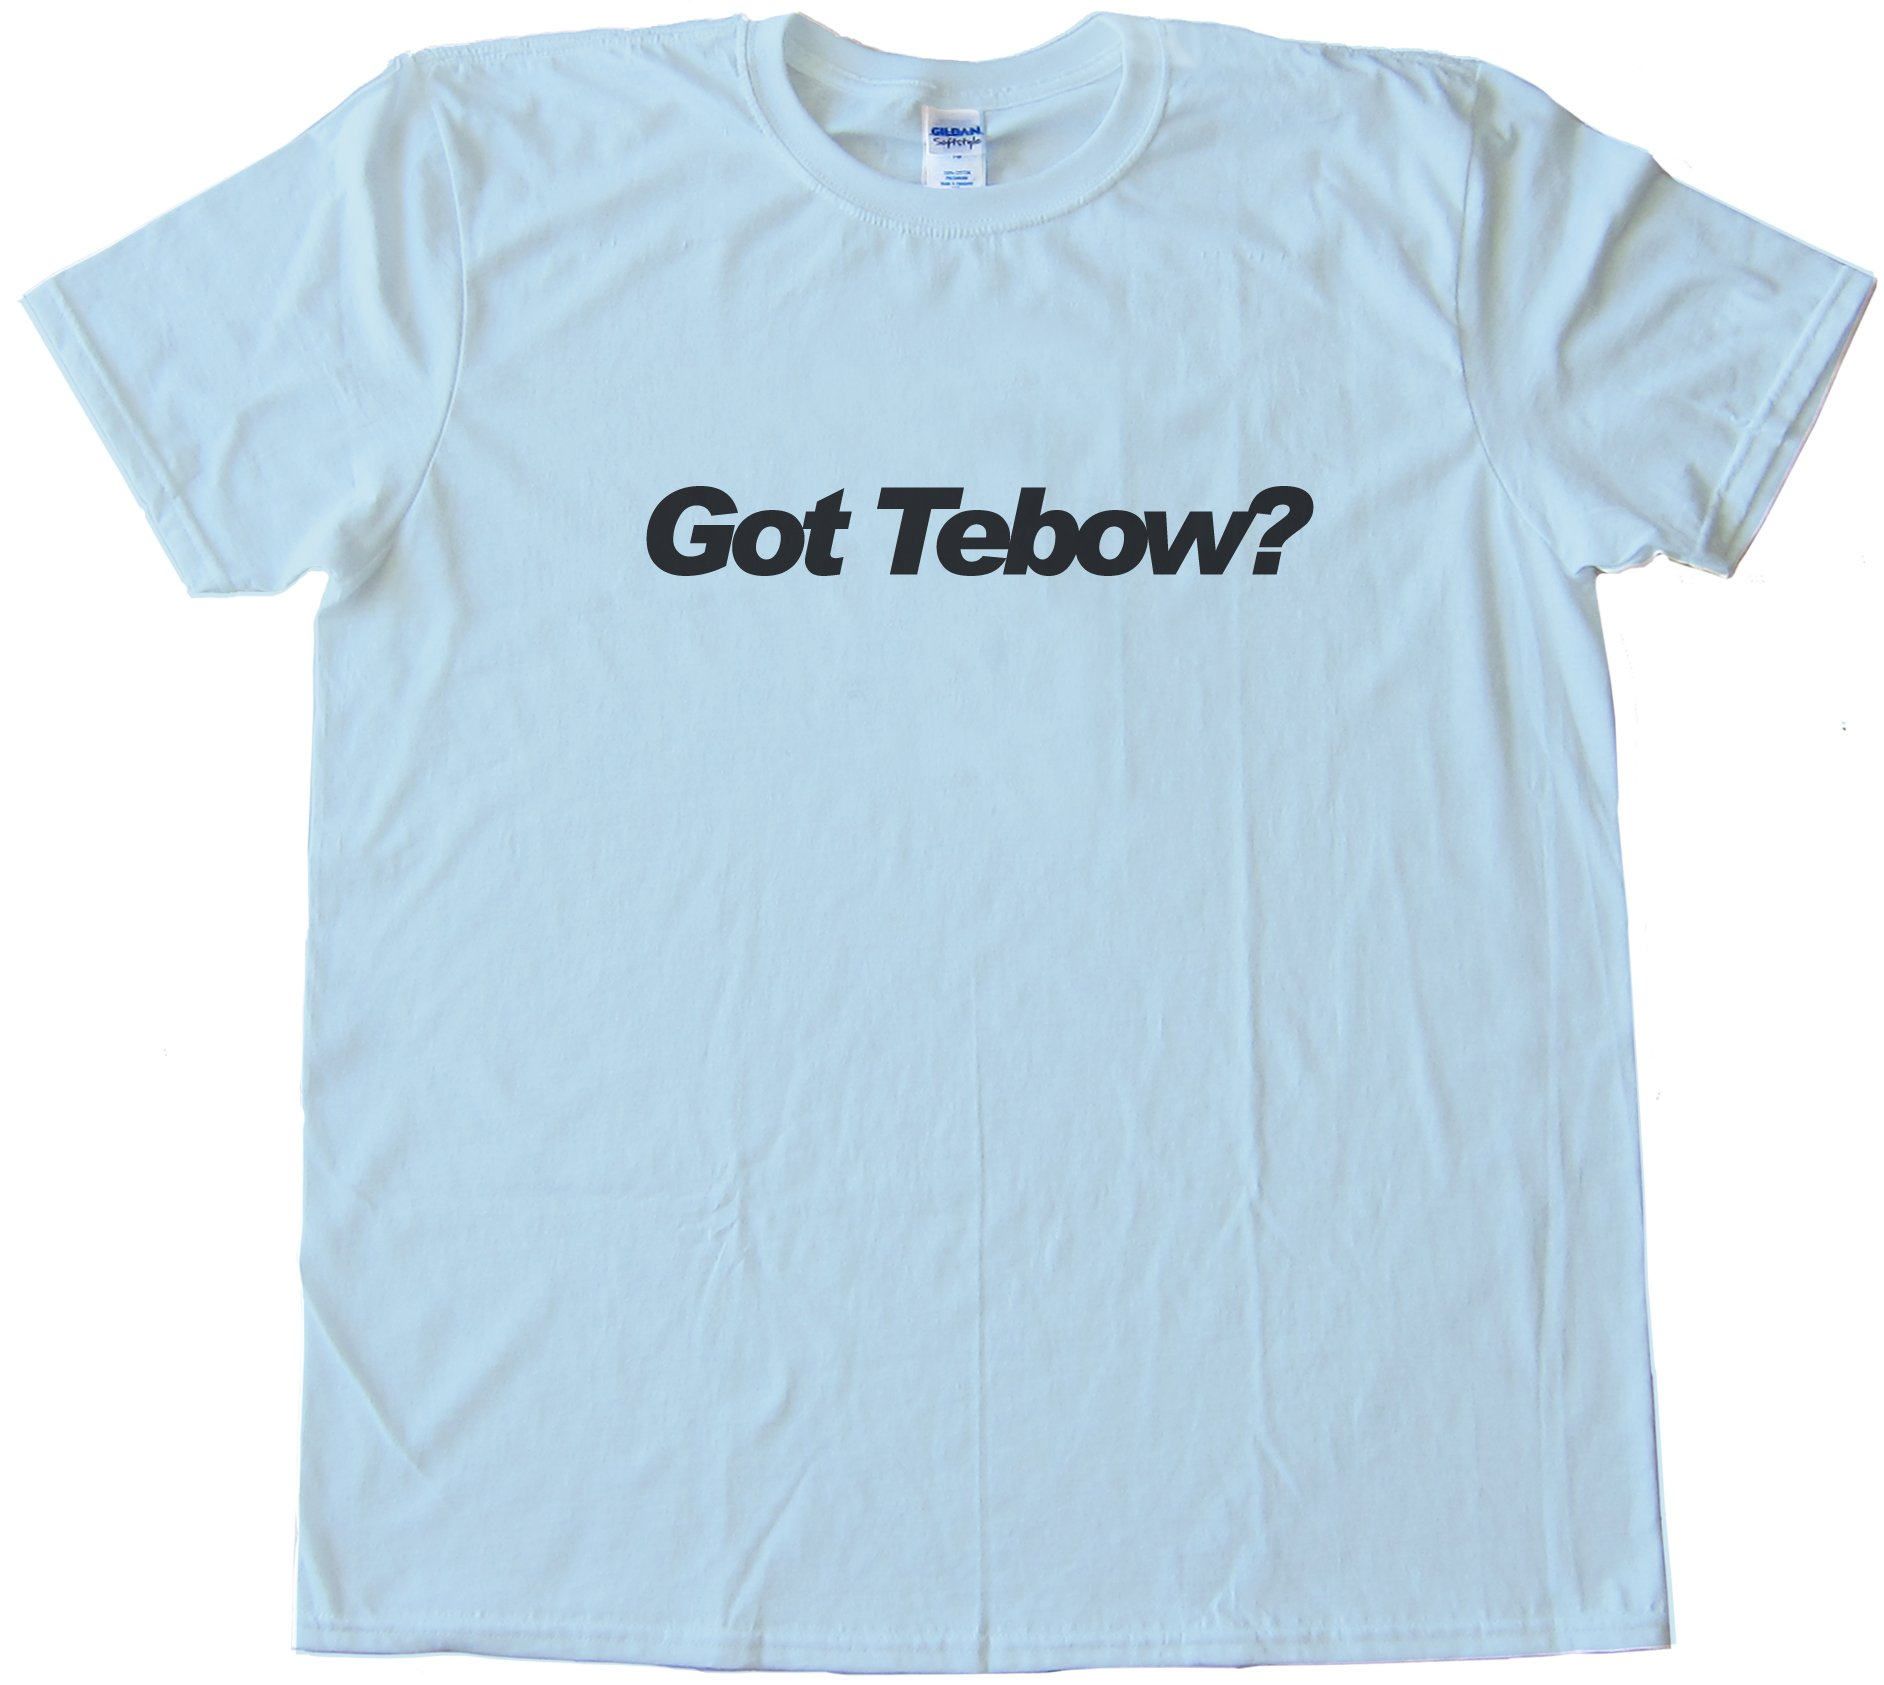 Got Tebow? Tim Tebow Ny Jets Tee Shirt